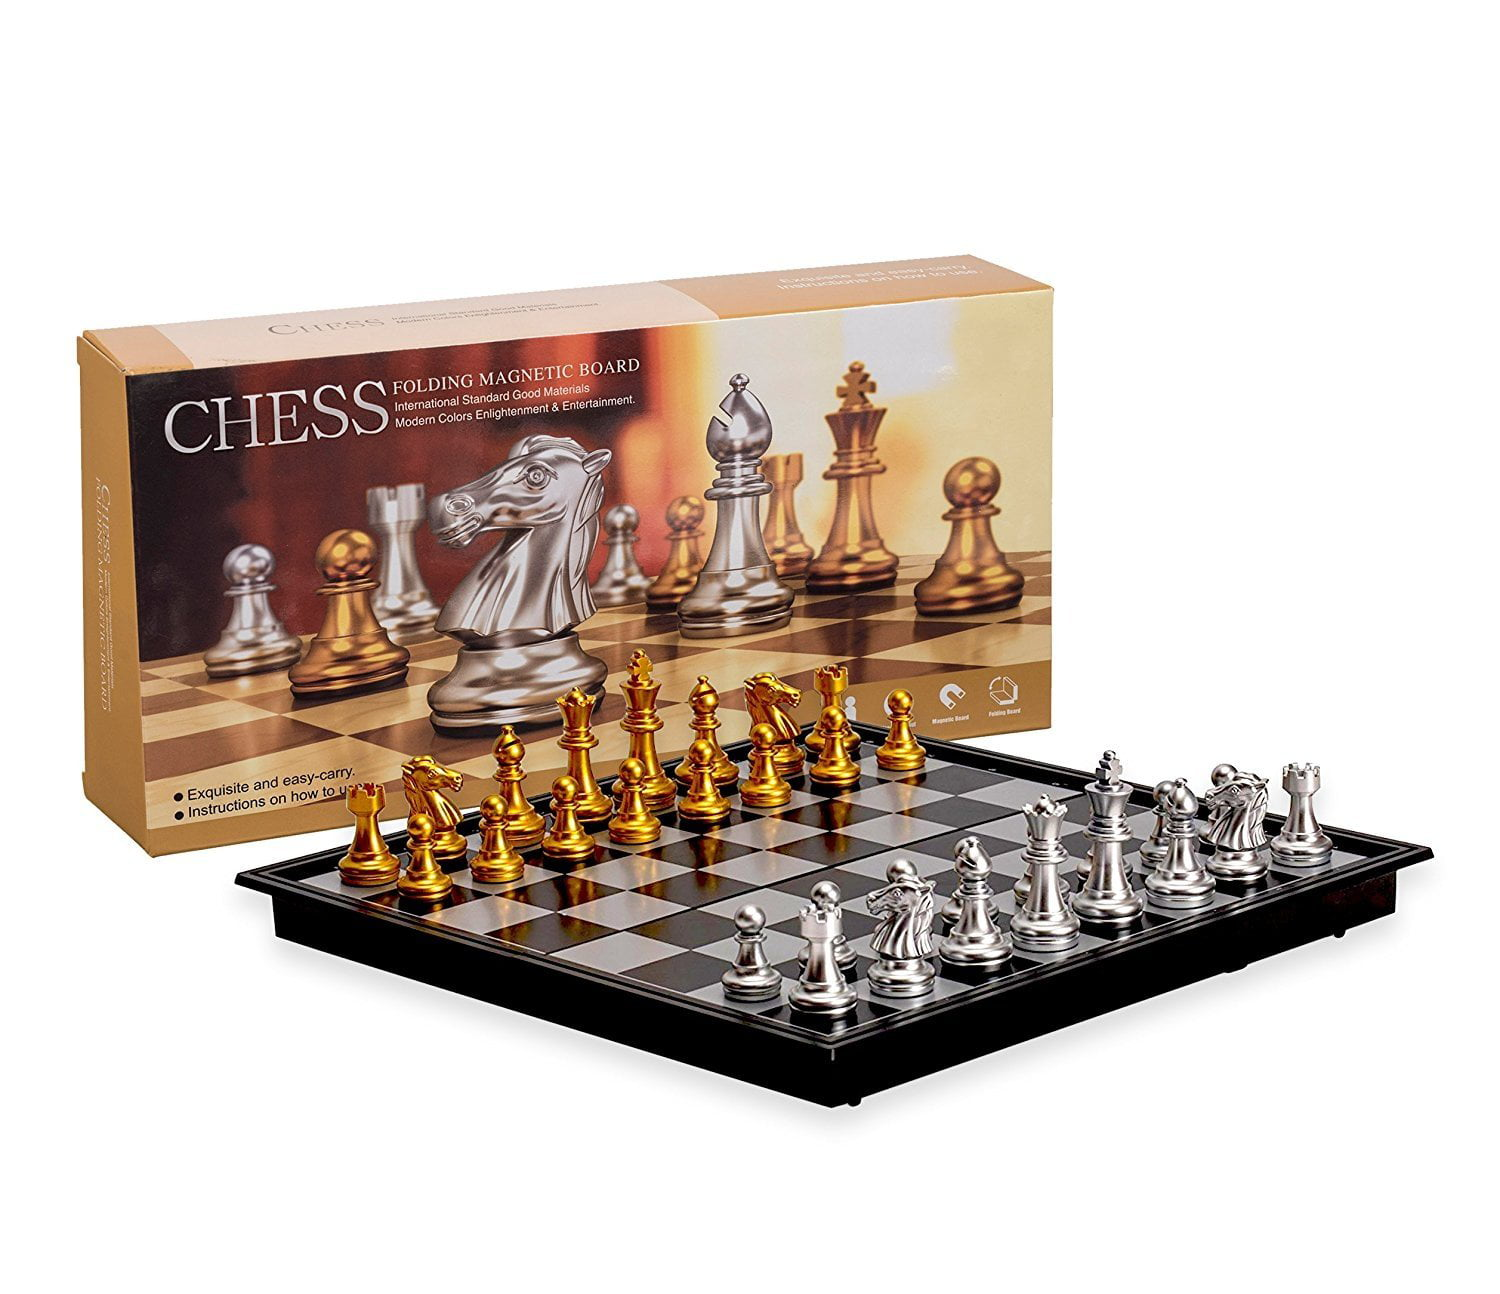 Magnetic Travel Chess Set with Board That Becomes A Storage Compartment by Big Mo'S Toys